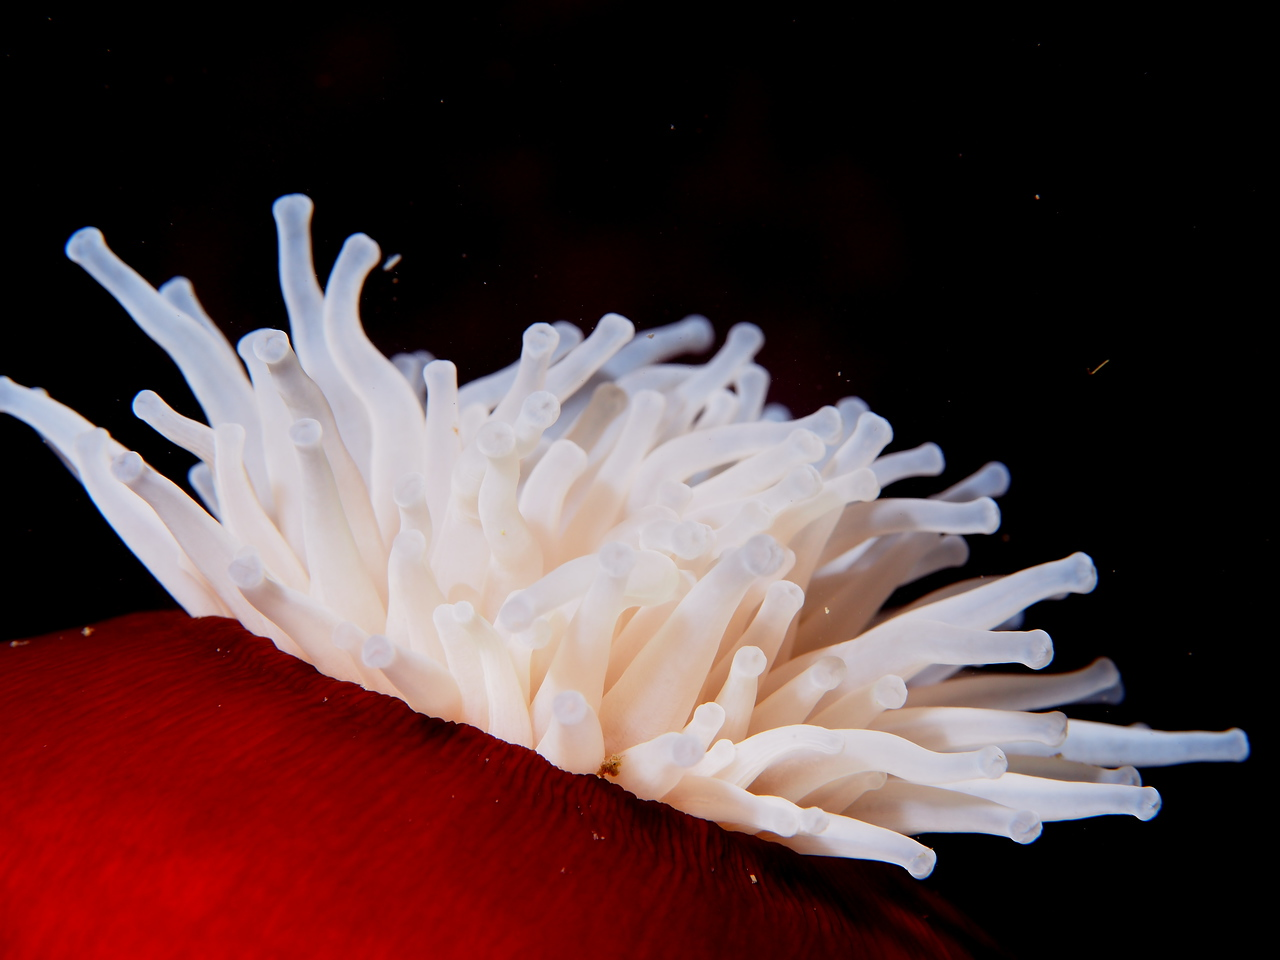 Fish-eating Anemone